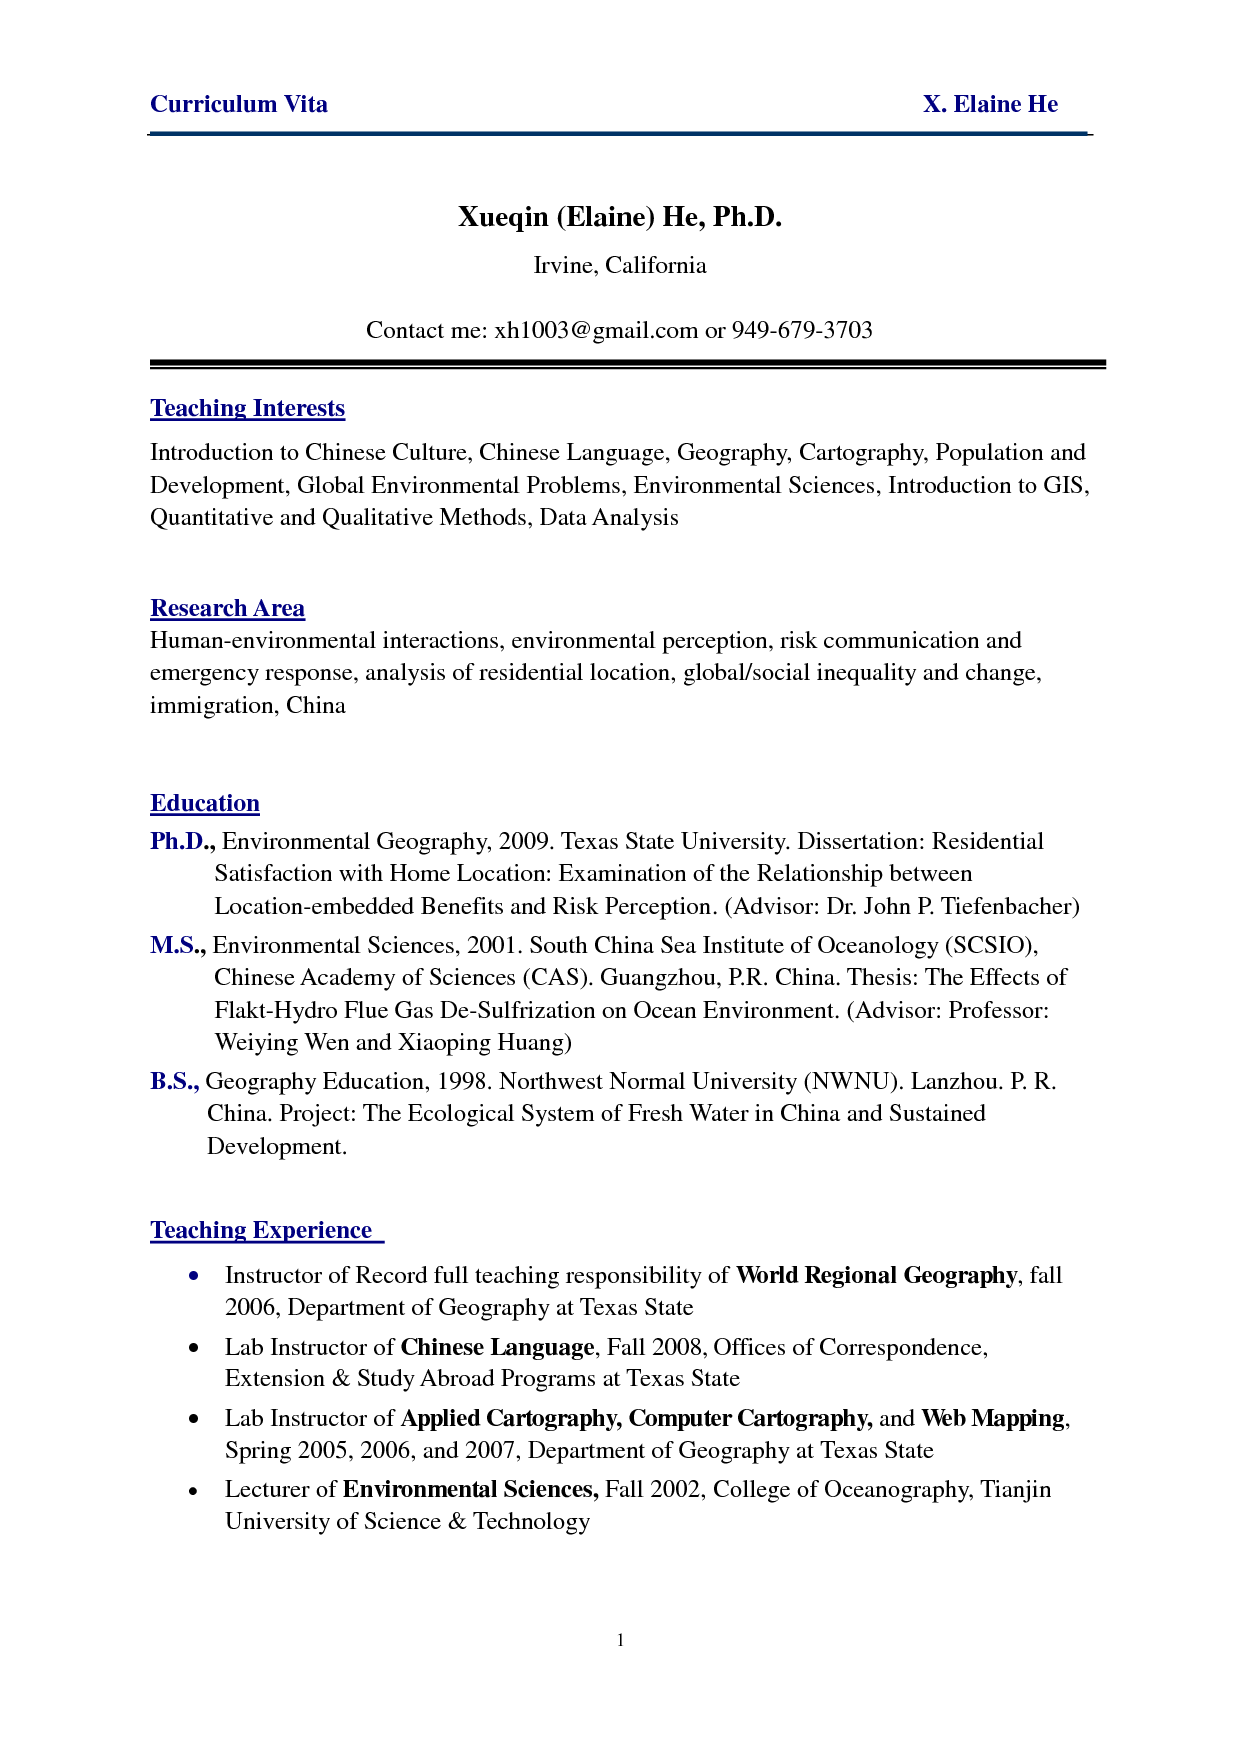 Nurse Resume Skills New Grad Lpn Resume Sample Nursing Hacked Sample